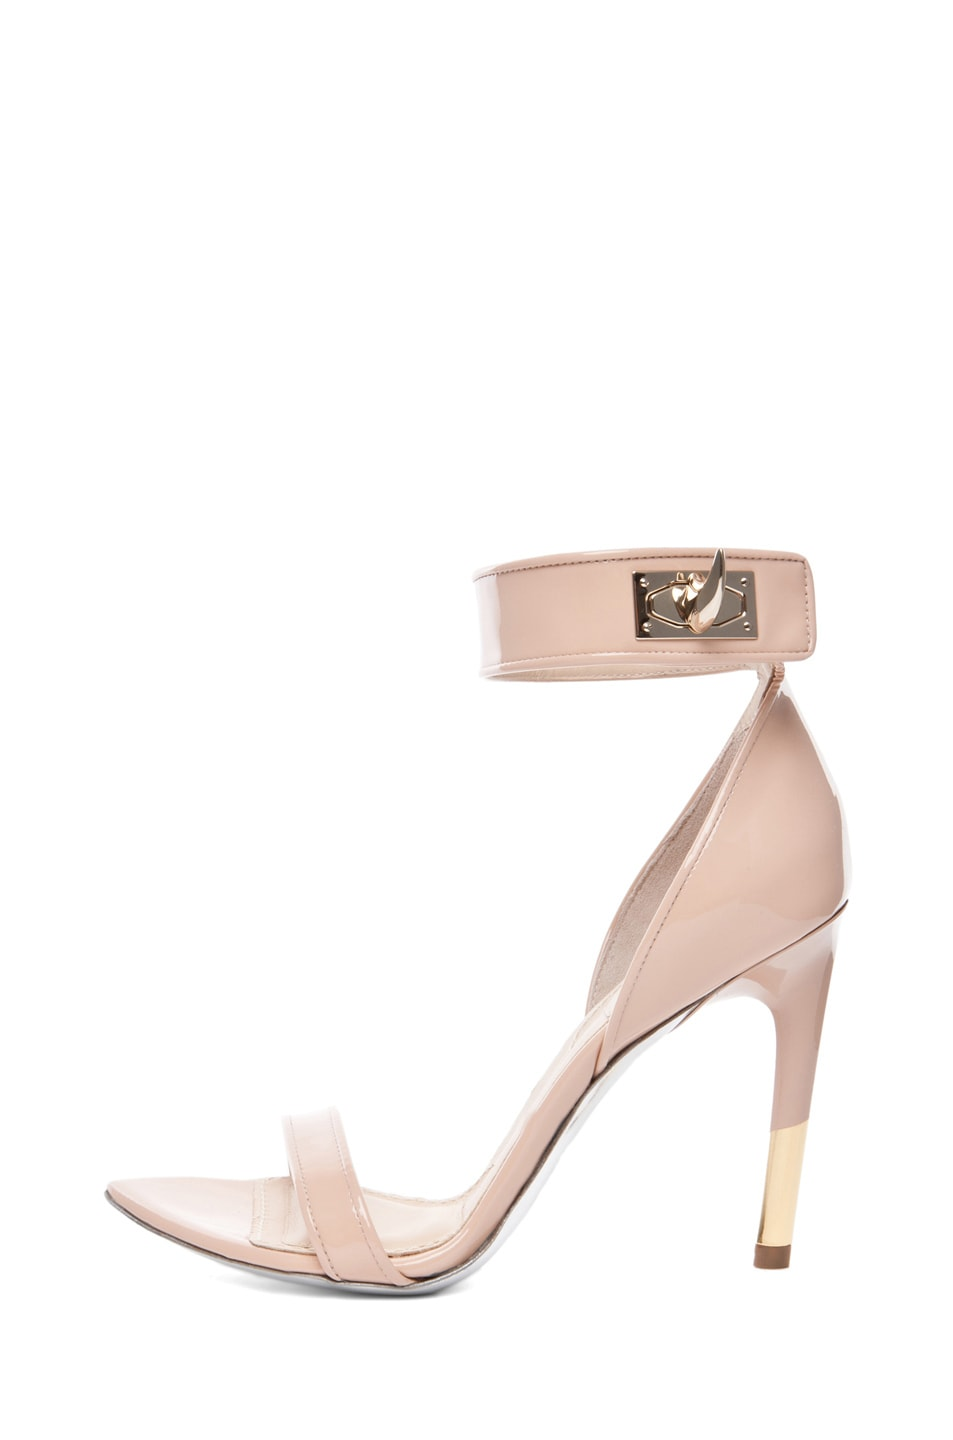 Image 1 of GIVENCHY Guerra Patent Leather Heel in Salmon